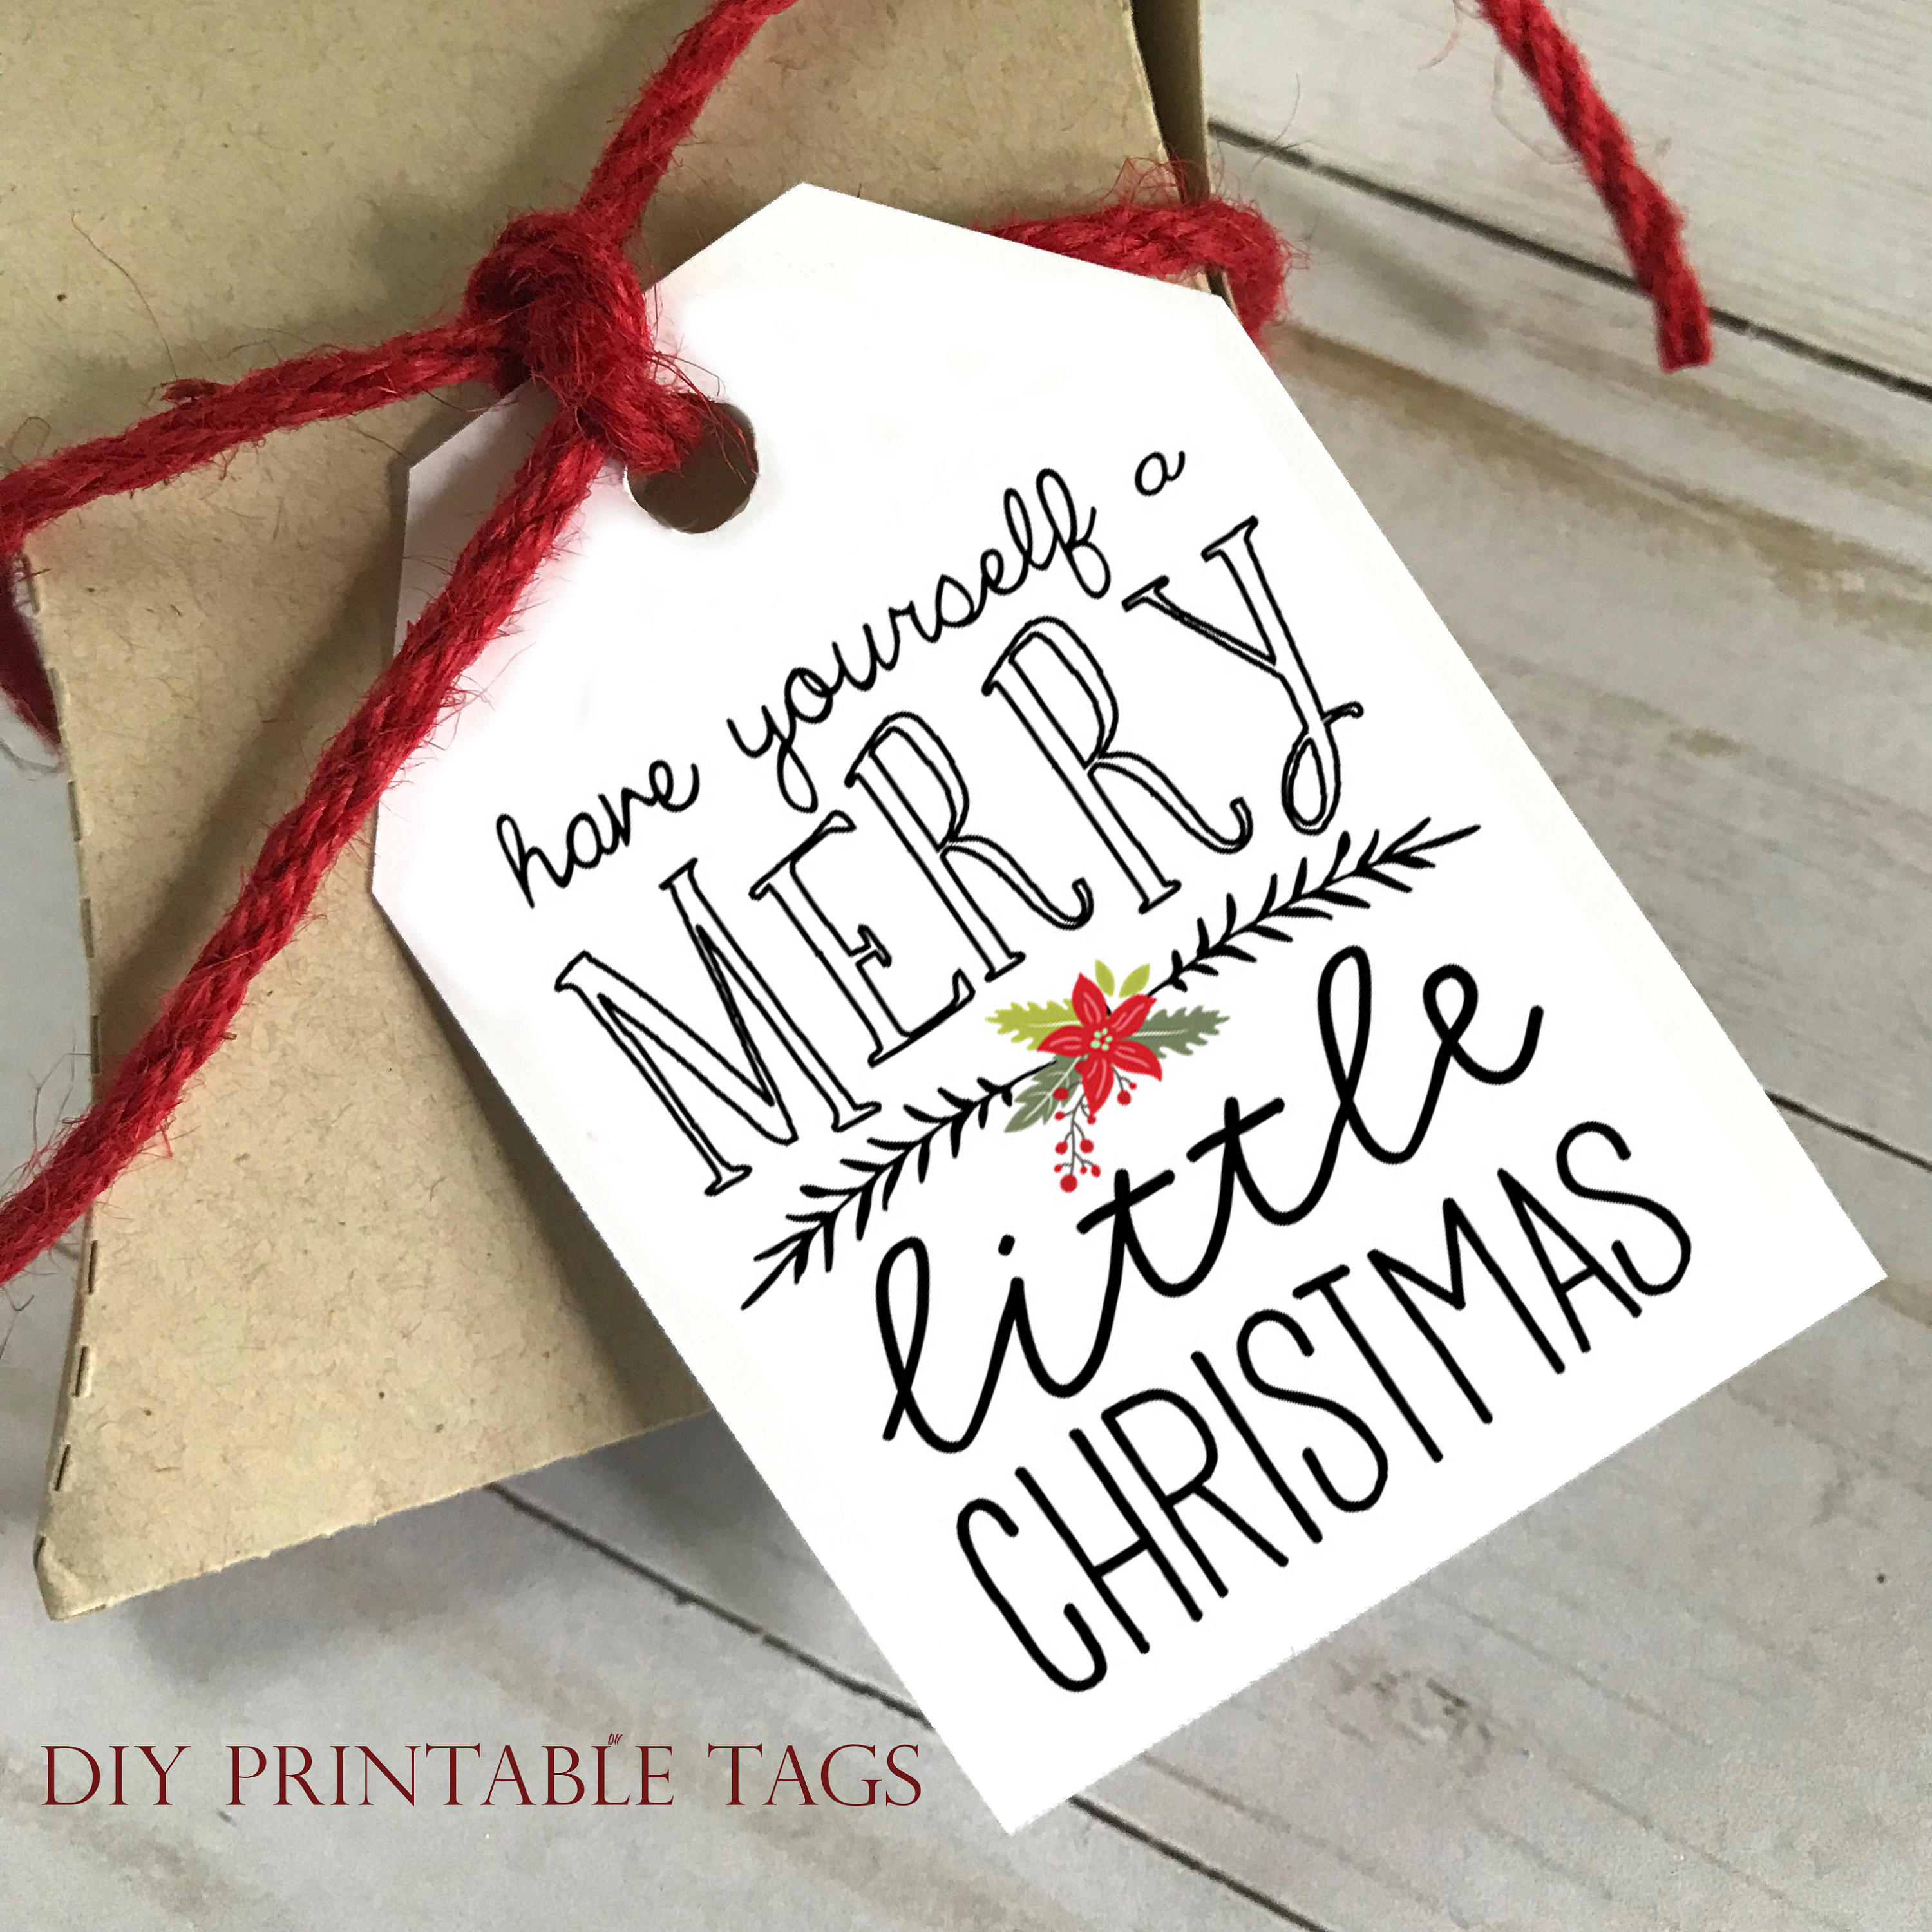 Diy printable tags have yourself a merry little christmas diy printable tags have yourself a merry little christmas printable christmas gift tags holiday gift tags gift tags solutioingenieria Gallery